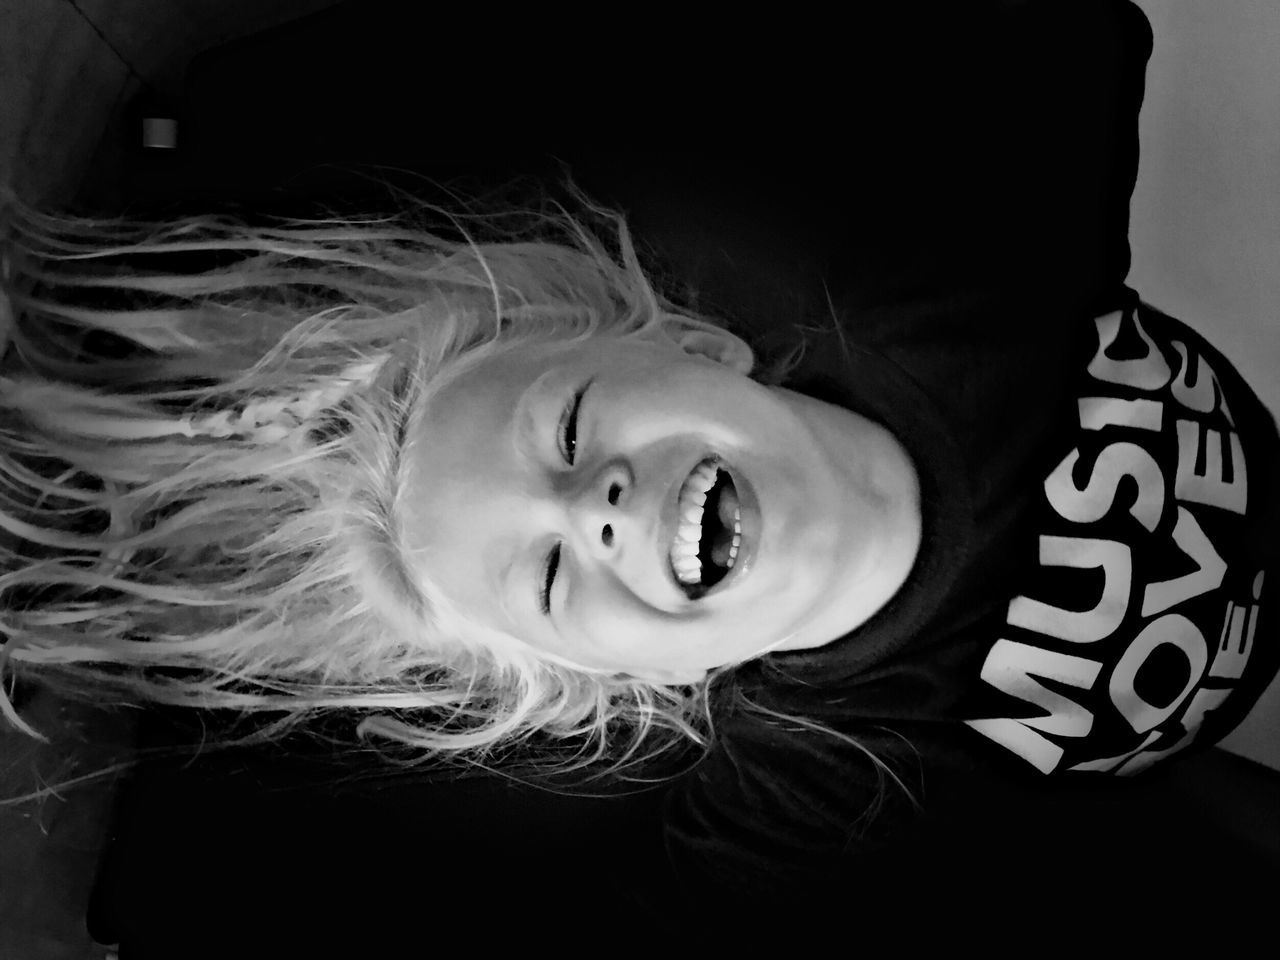 Dramatic Angles Childhood Indoors  Elementary Age Headshot Person Cute Leisure Activity Lifestyles Innocence Casual Clothing Black And White Laughing Girl Blond Hair Laughing Out Loud Laugh Playing Gravity Monochrome Photography